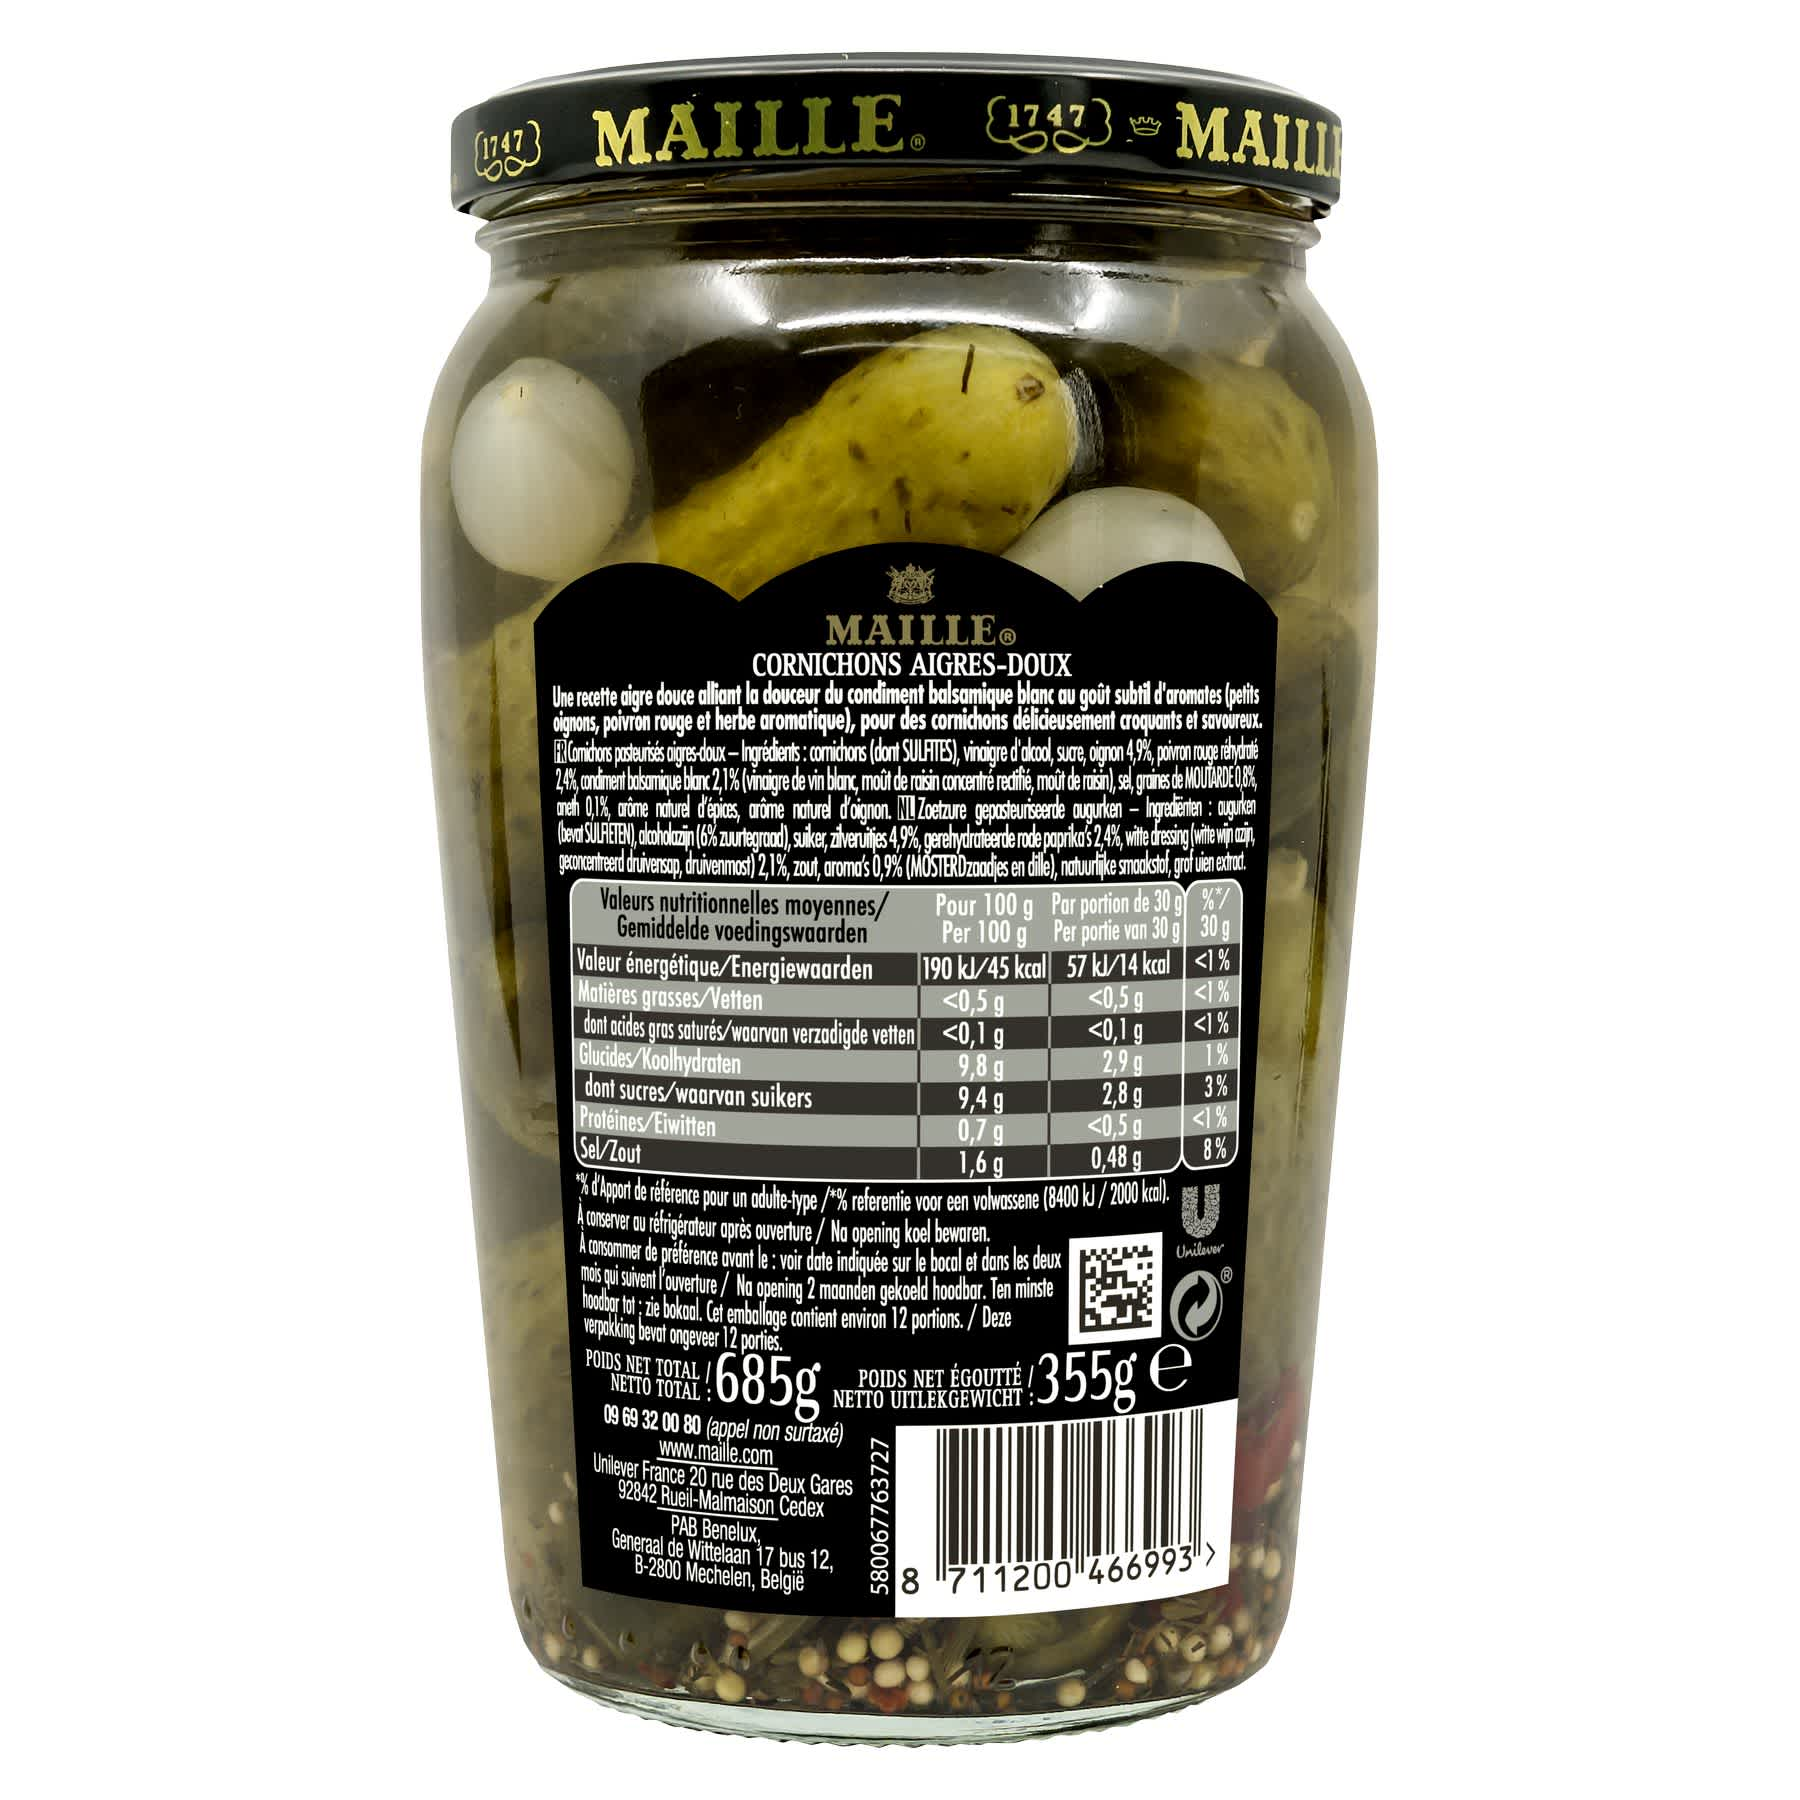 Maille - Cornichons aigres doux, 355 g, backend